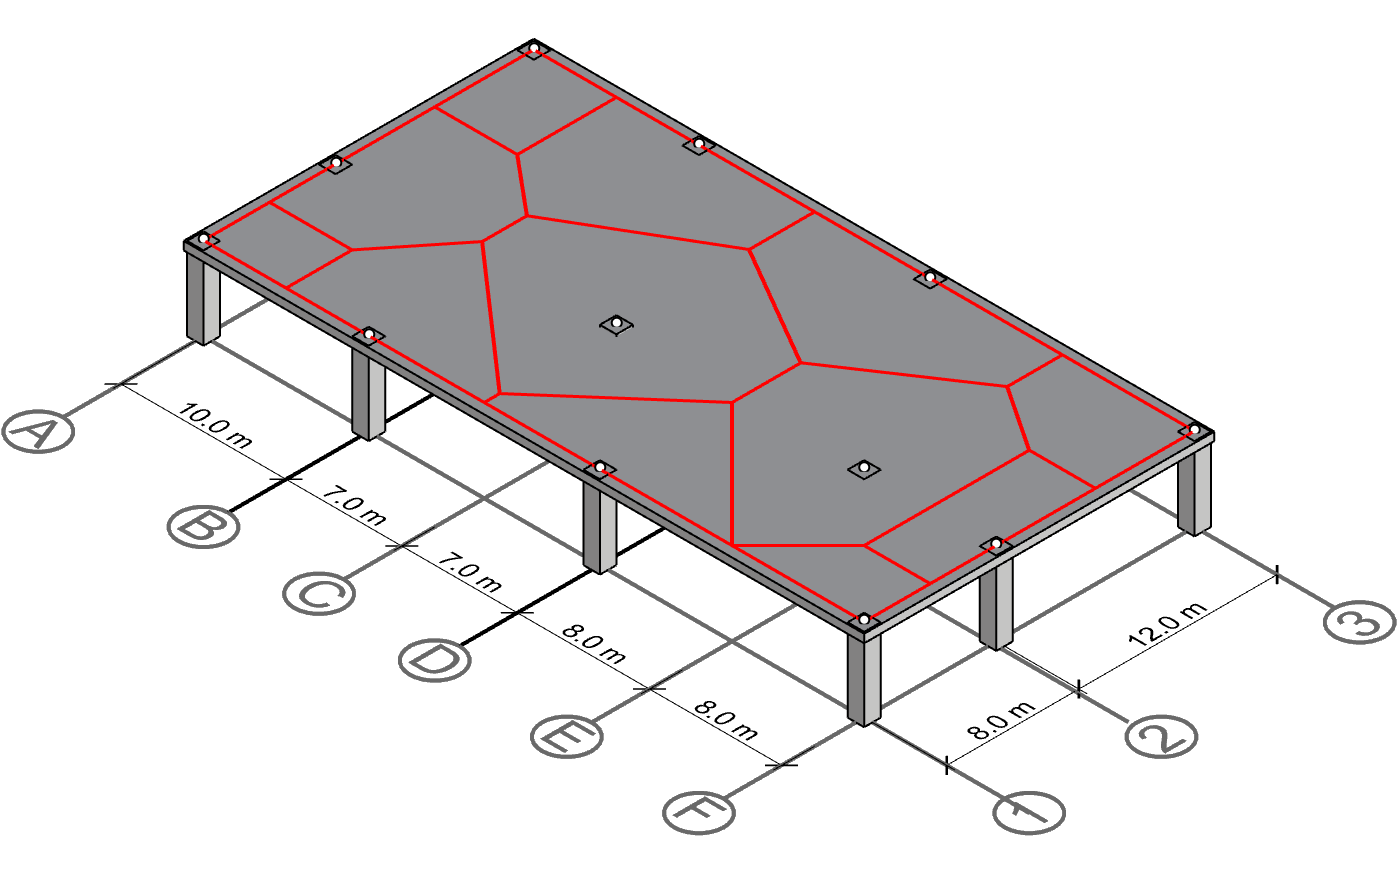 Last step: calculate the area of the polygons. The result will be the irregular tributary areas.